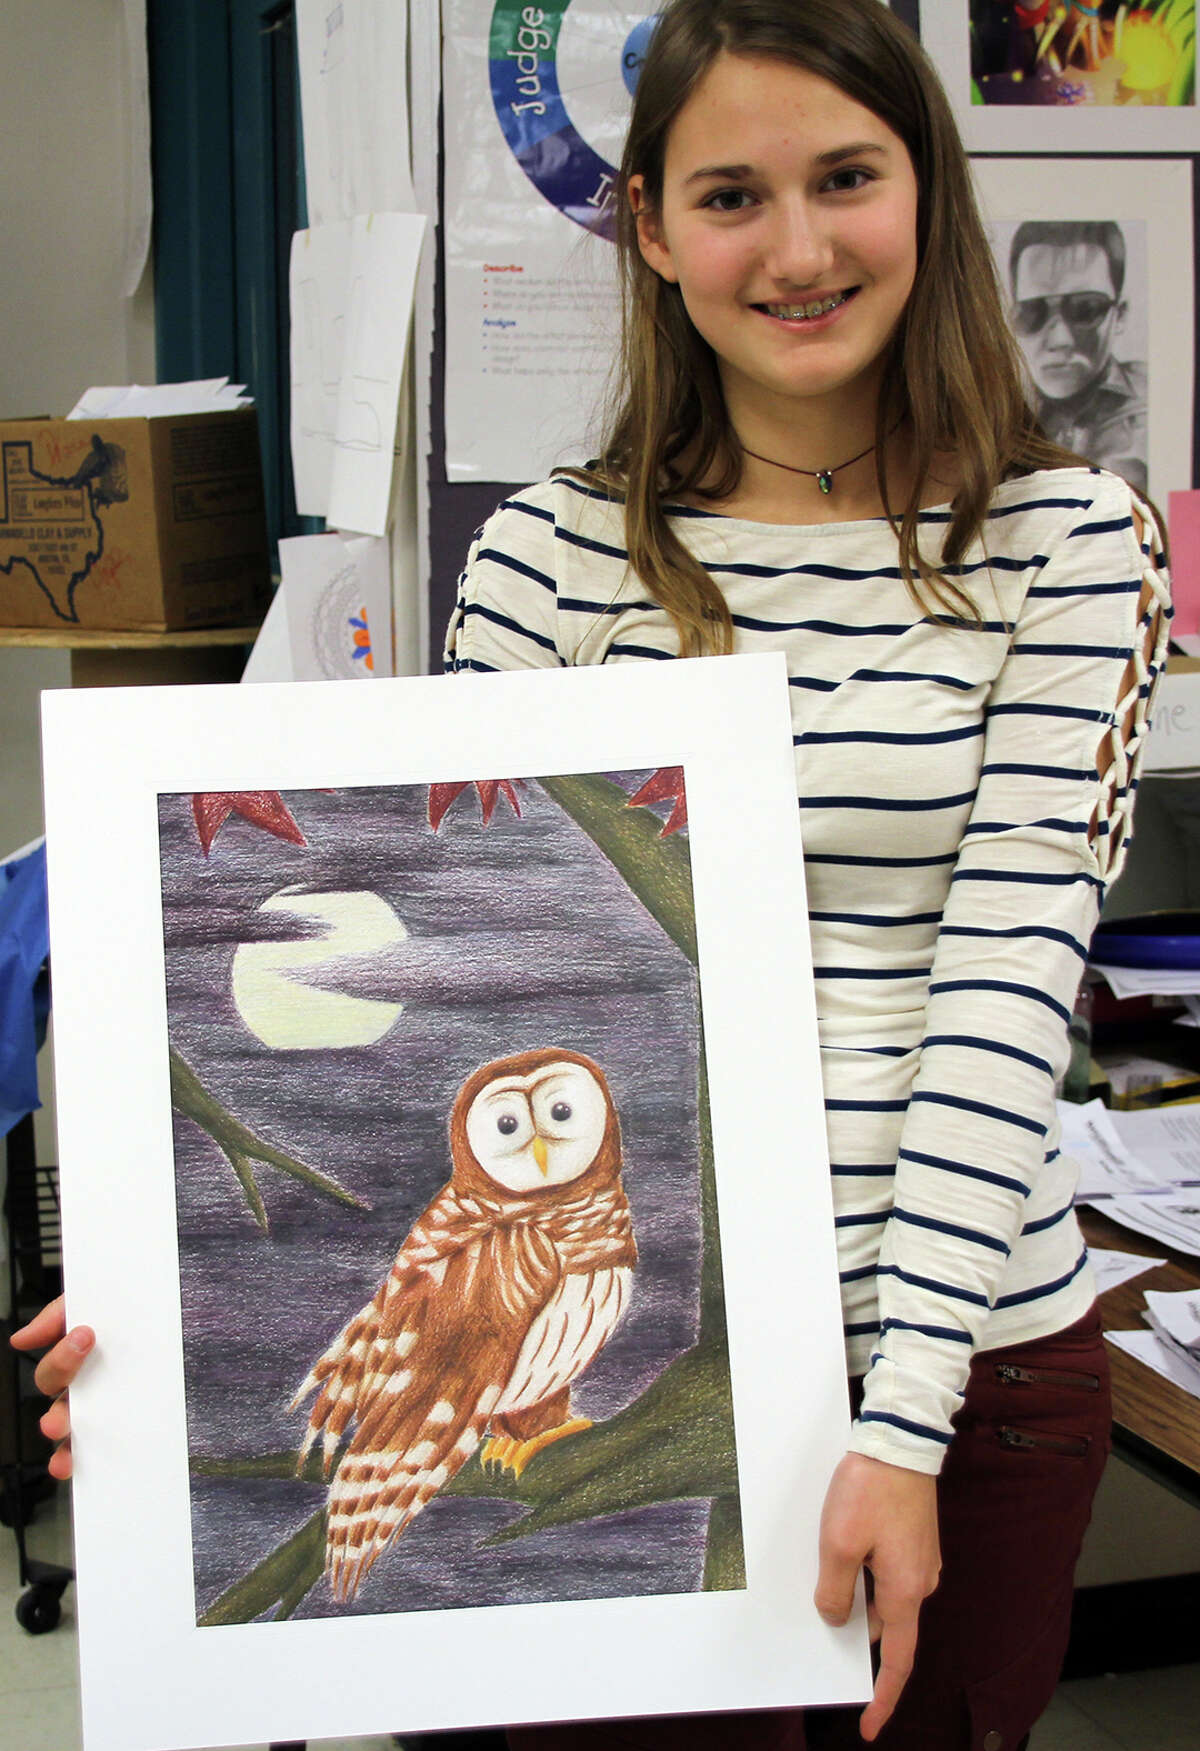 Huffman Middle School student, Lilly Barr, poses for a photo with her artwork for the Rodeo Art Show. She was awarded a gold medal for her submission in last year's Houston Livestock Show and Rodeo School Art Program.